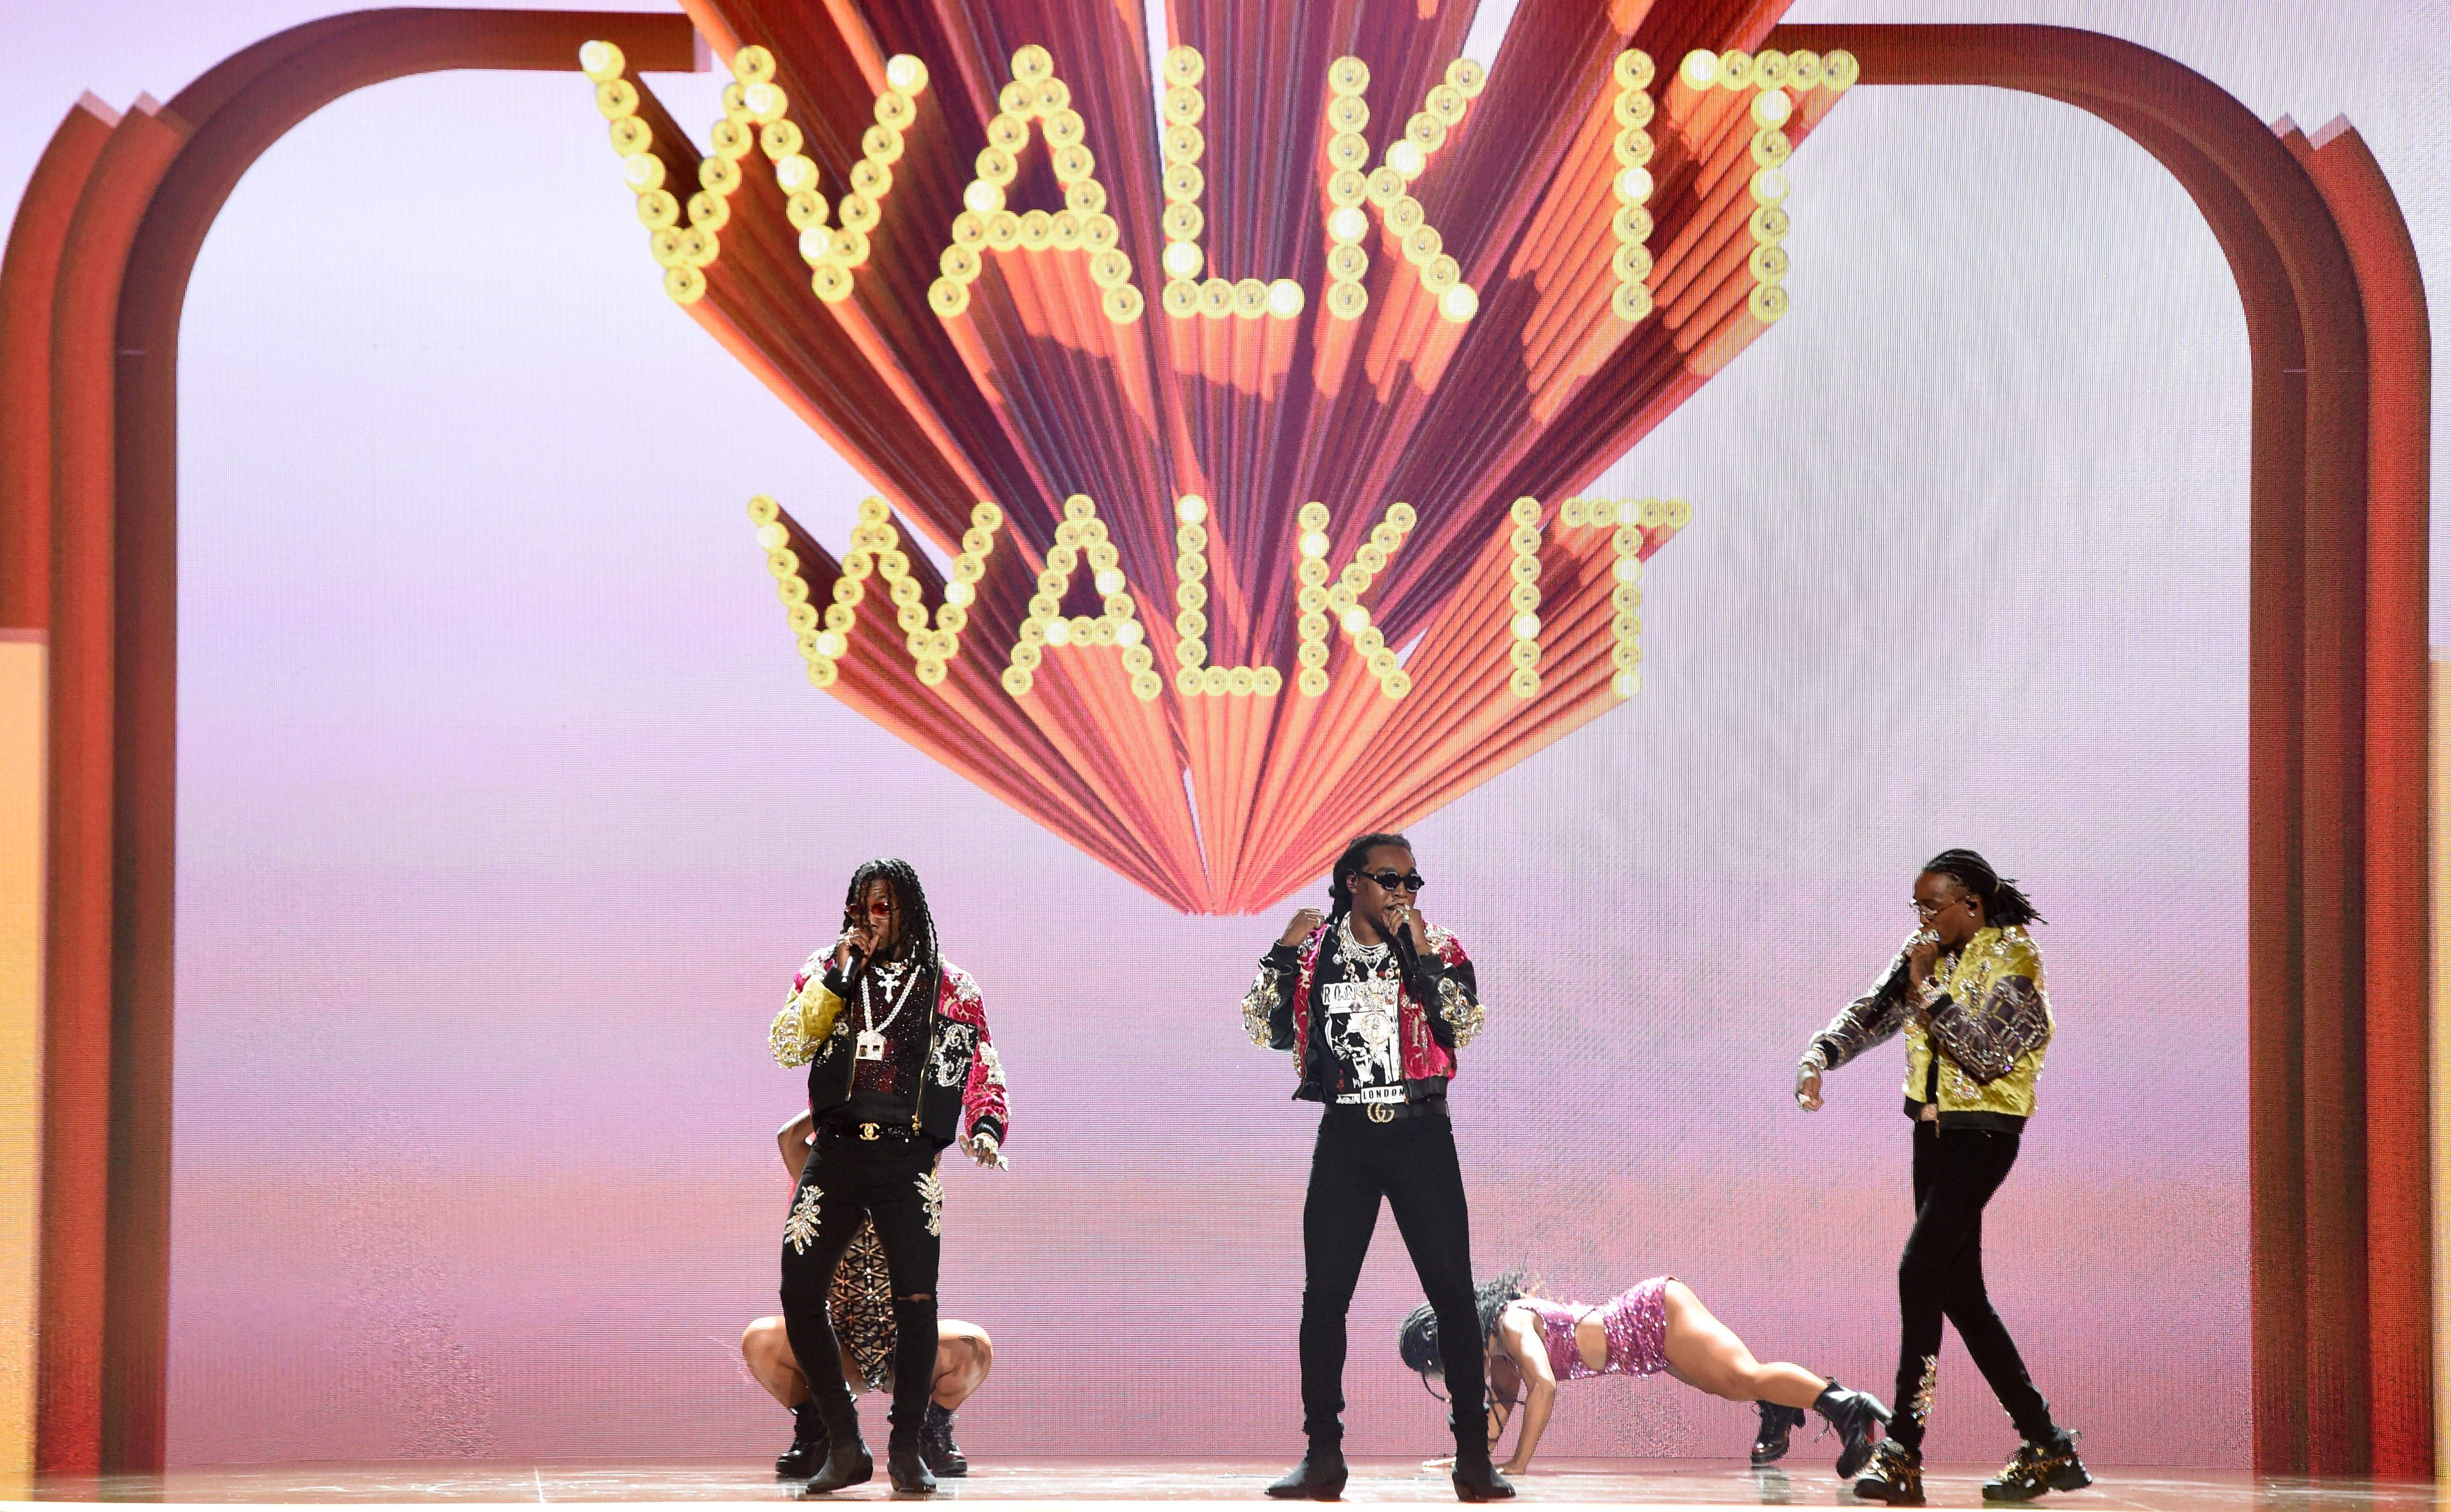 Quavo, Offset, and Takeoff of Migos perform onstage during the BET Awards at Microsoft Theatre in Los Angeles, Calif., on June 24, 2018.